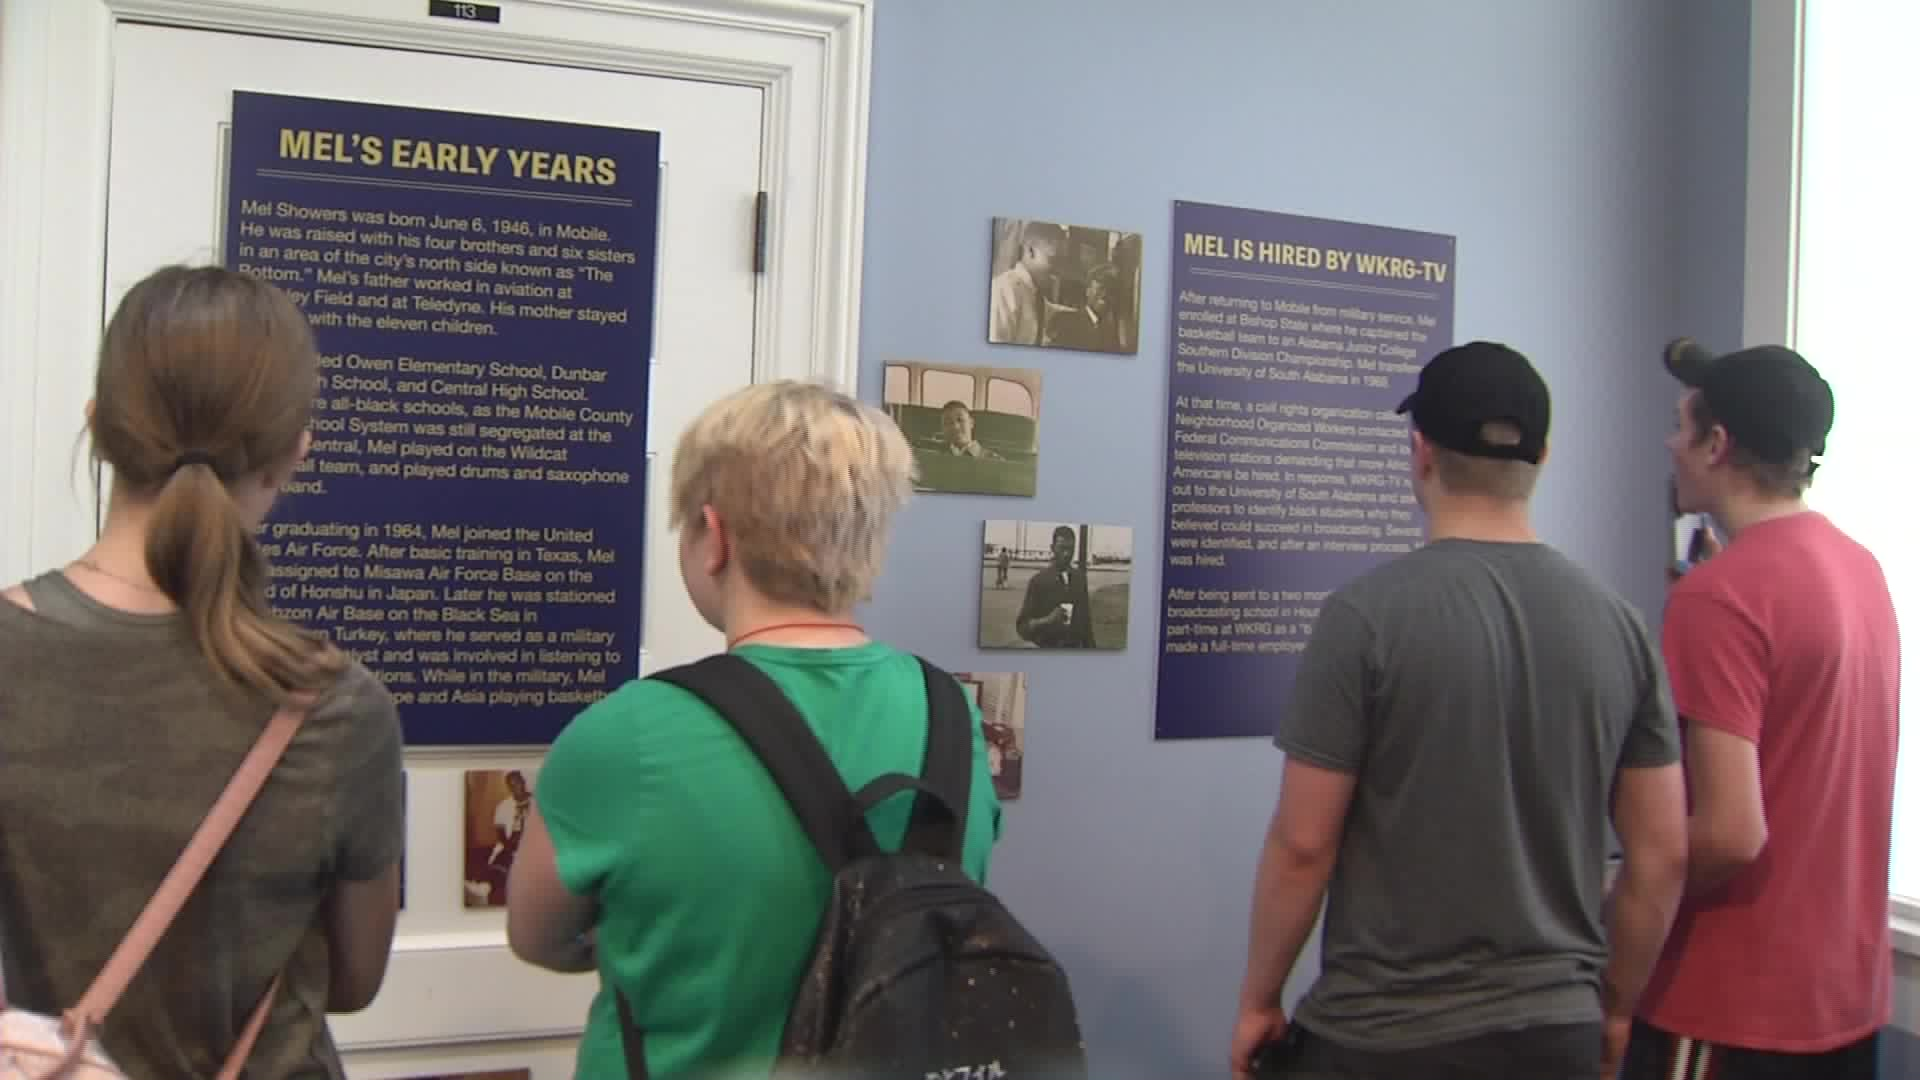 The Vikings Begin: Travelling exhibit comes to History Museum of Mobile